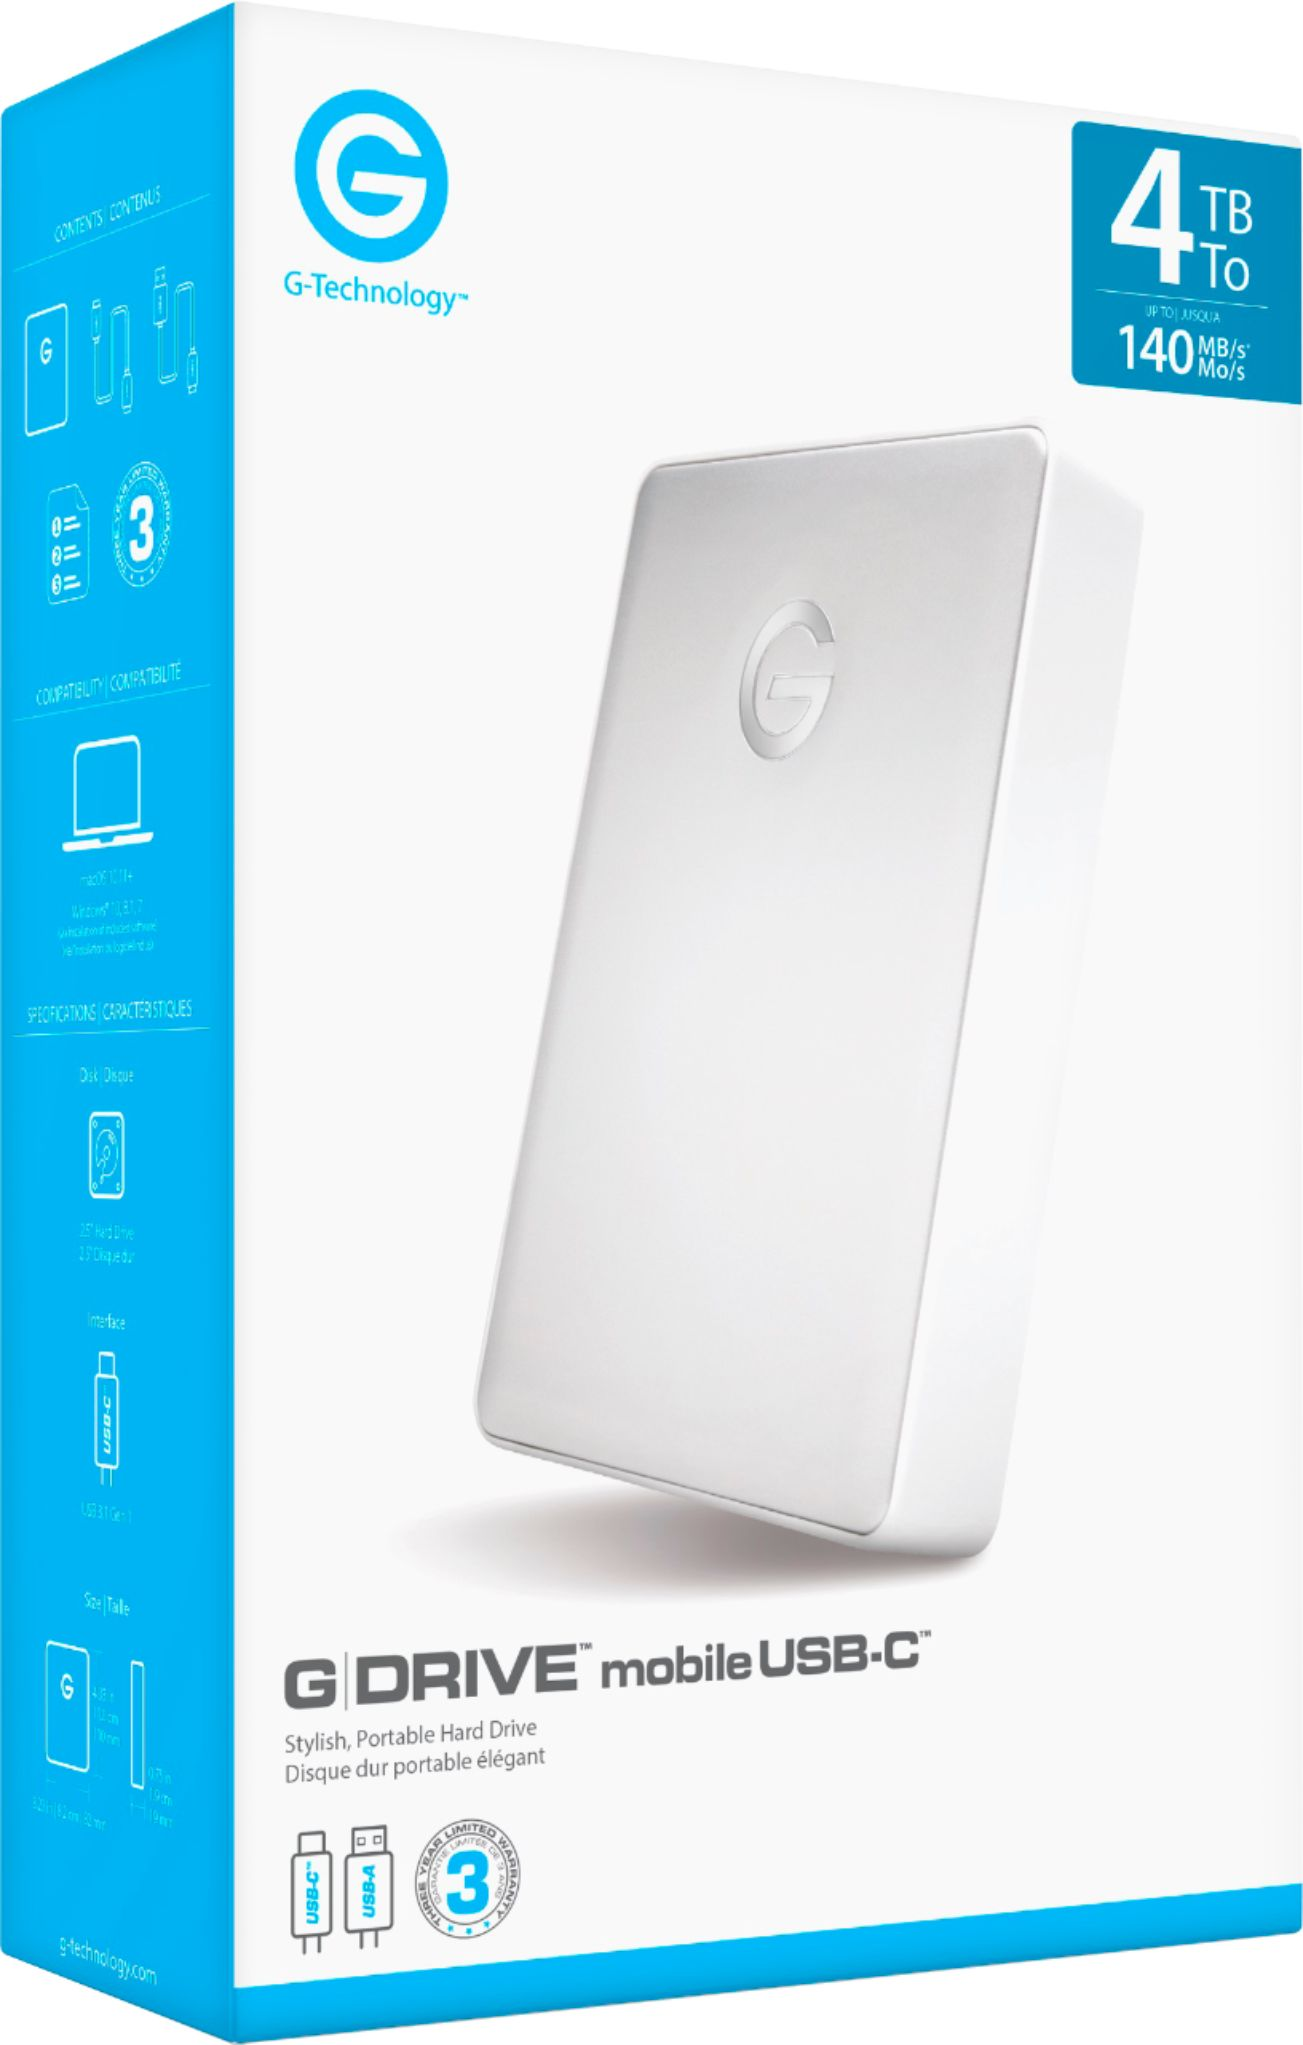 G-Technology G-Drive Mobile Usb-C 4Tb External Usb 3.1 Gen 1 Portable Hard Drive Silver 0G10348 - Best Buy